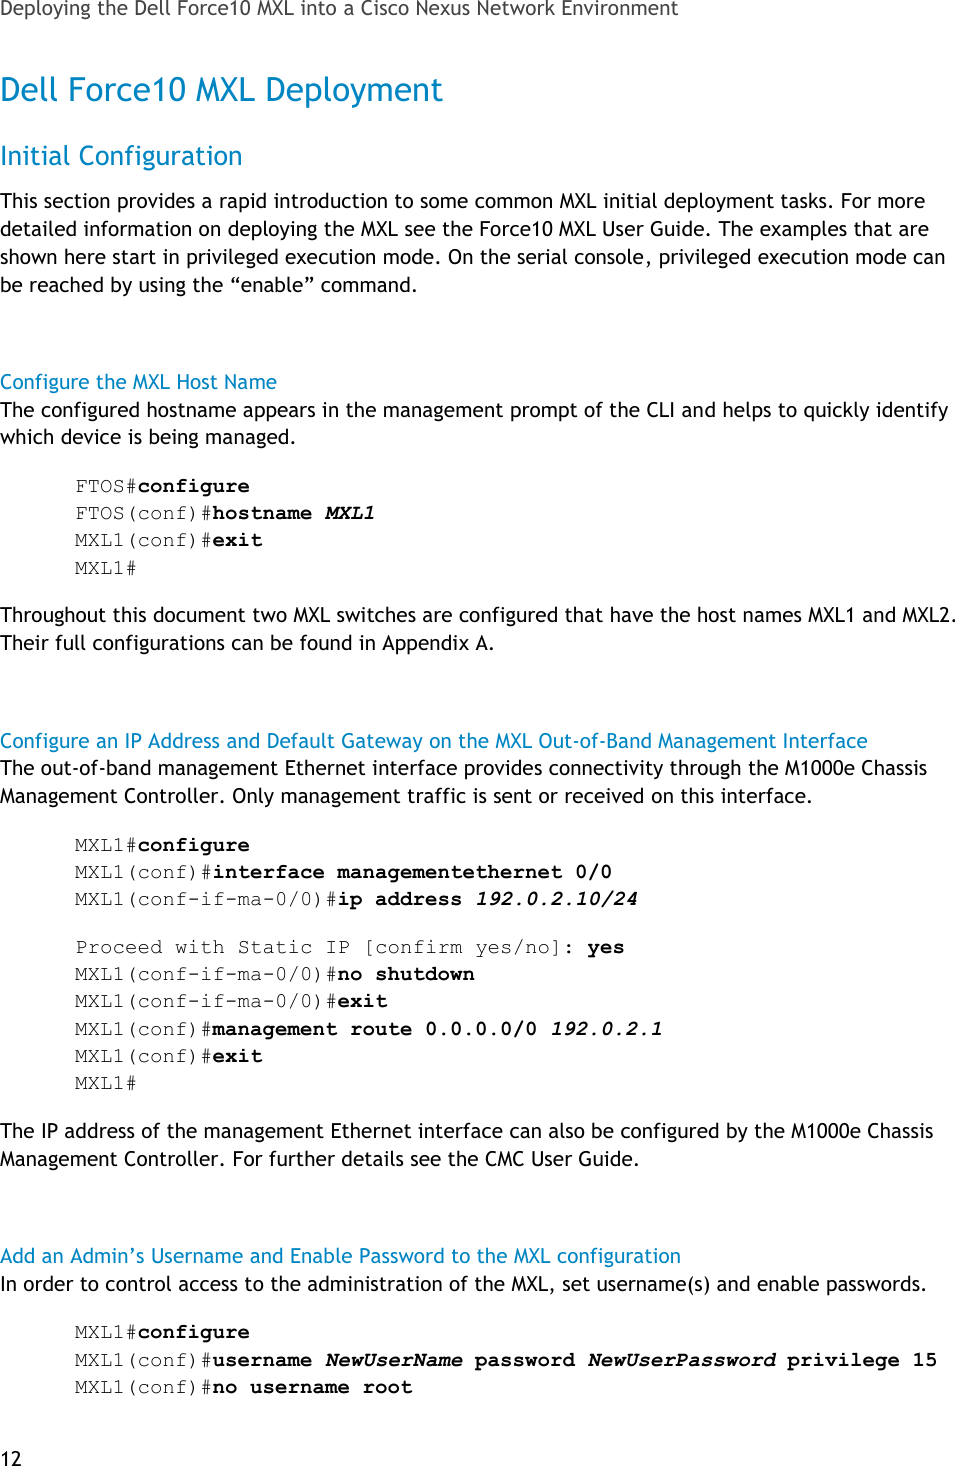 Dell Force10 Mxl Blade White Paper Deploying The Into A